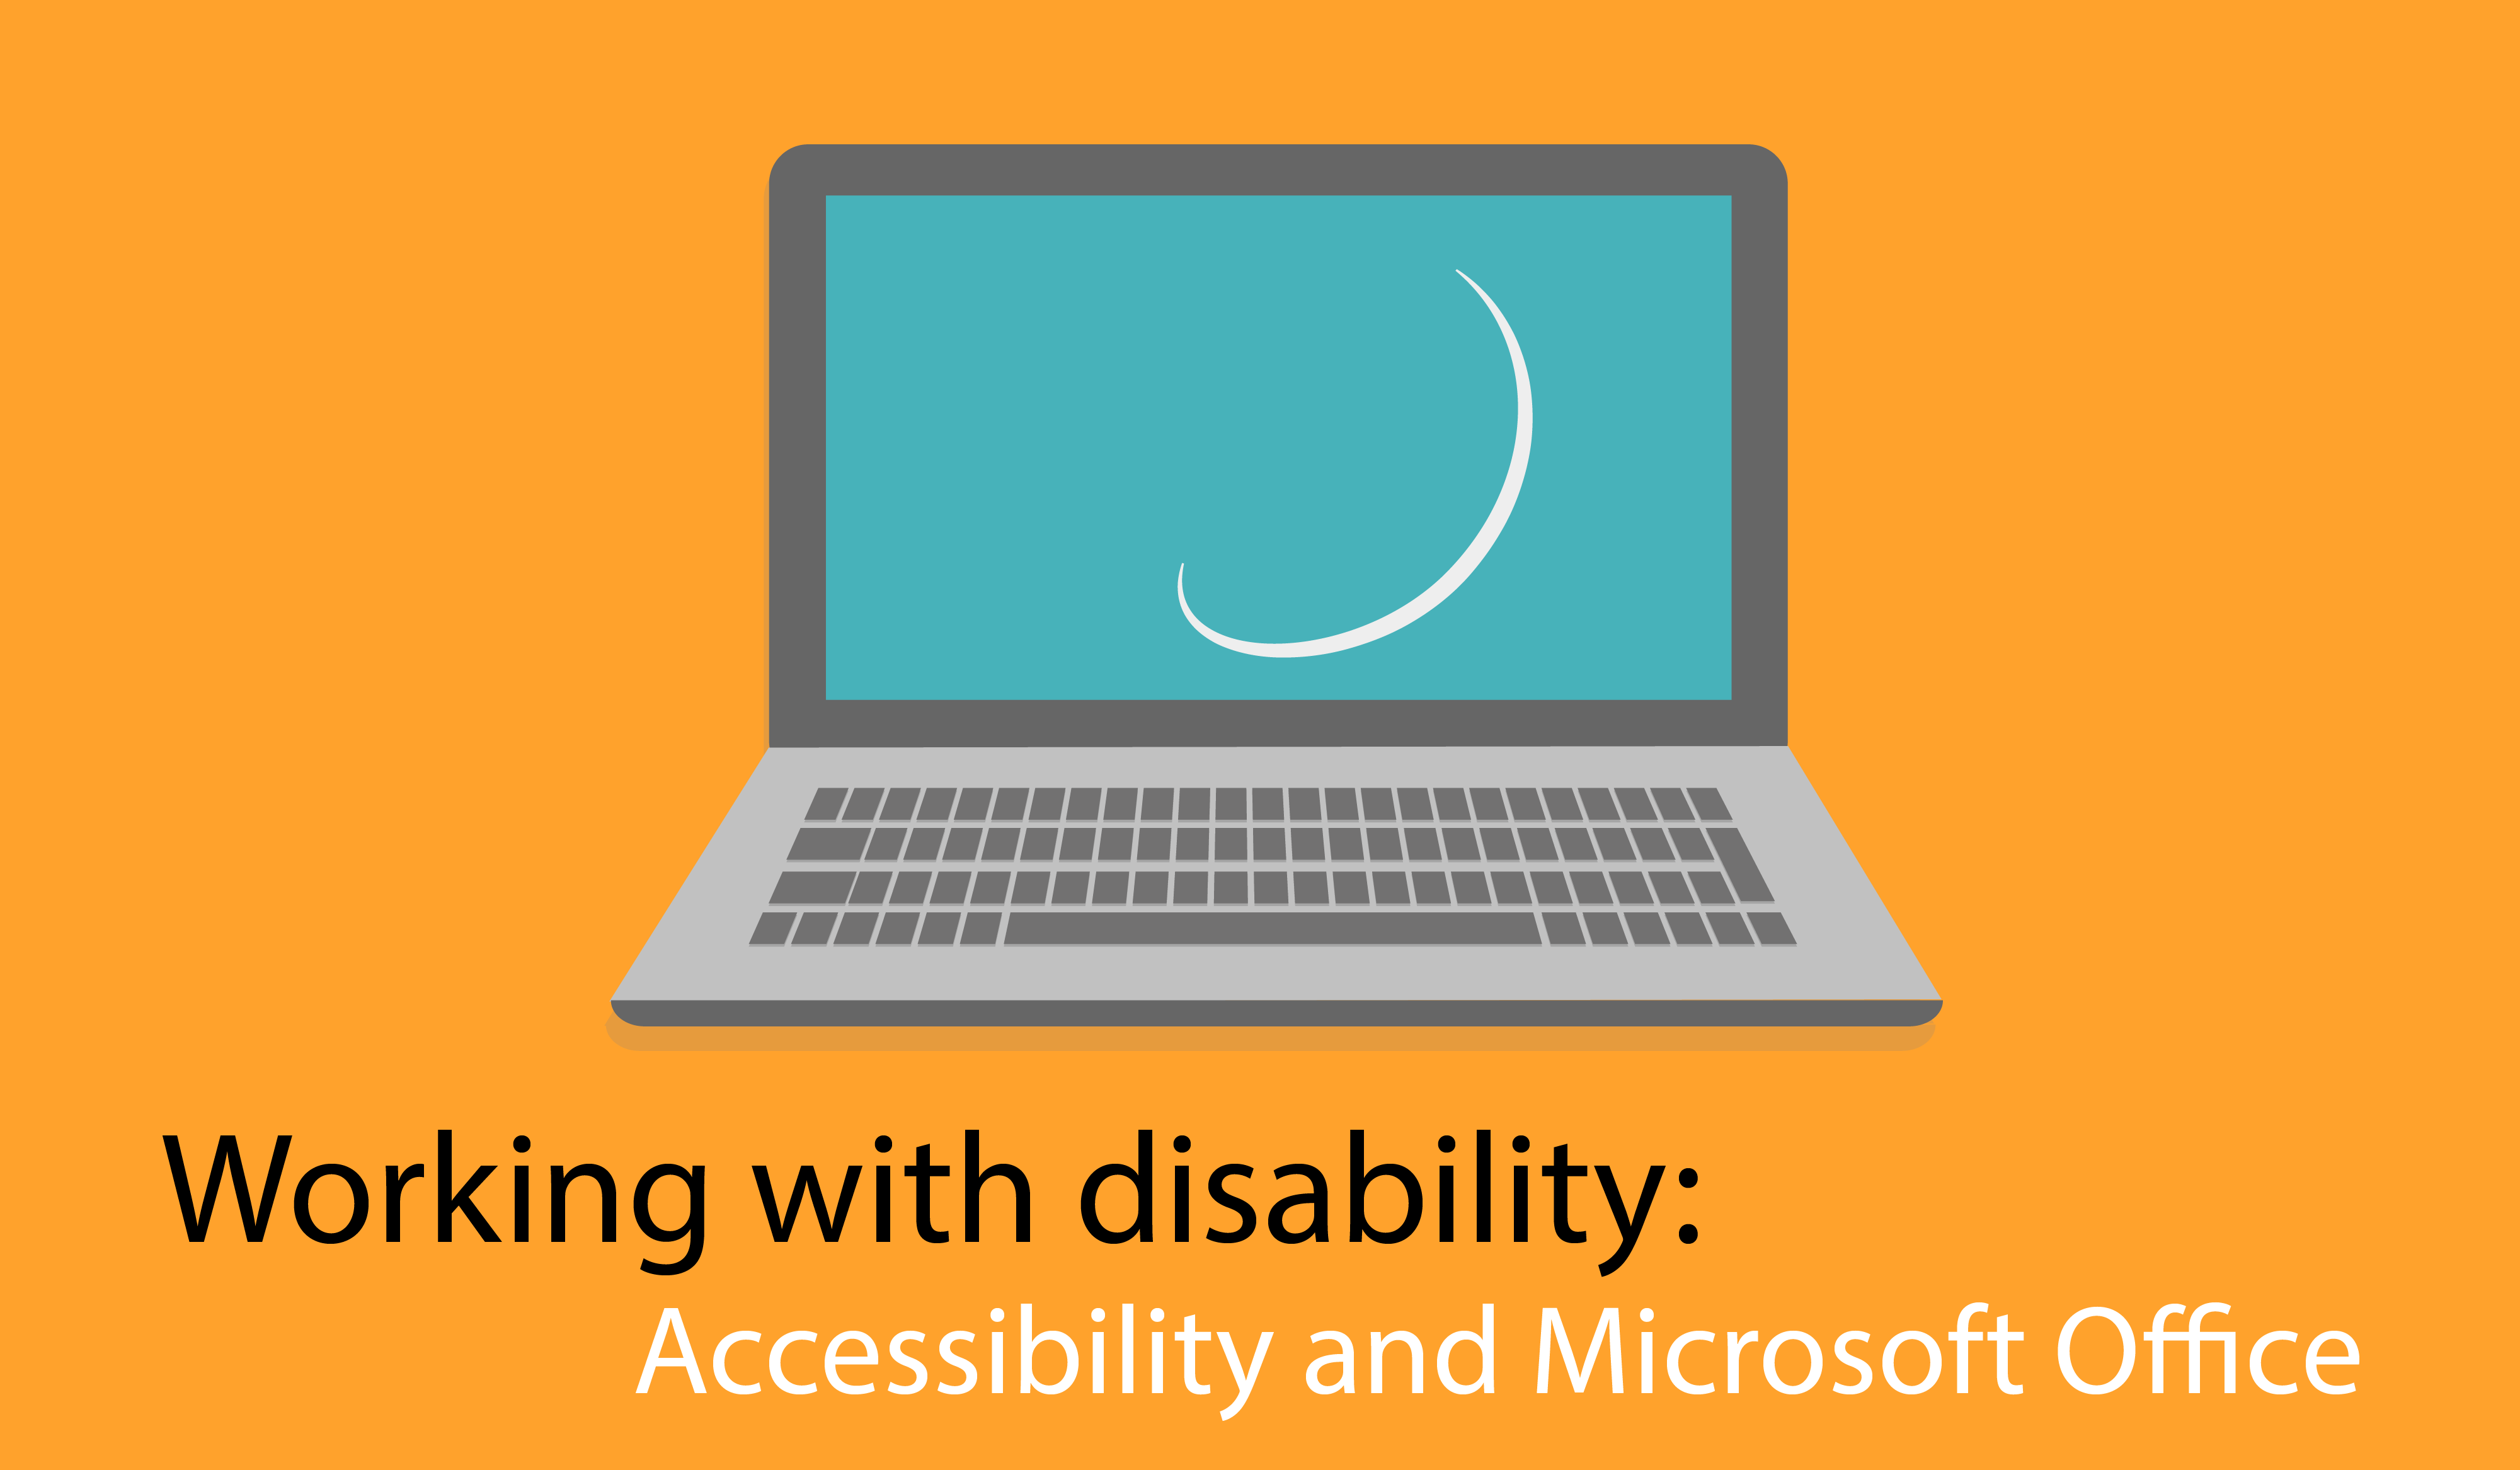 Working with disability: Accessibility and Microsoft Office